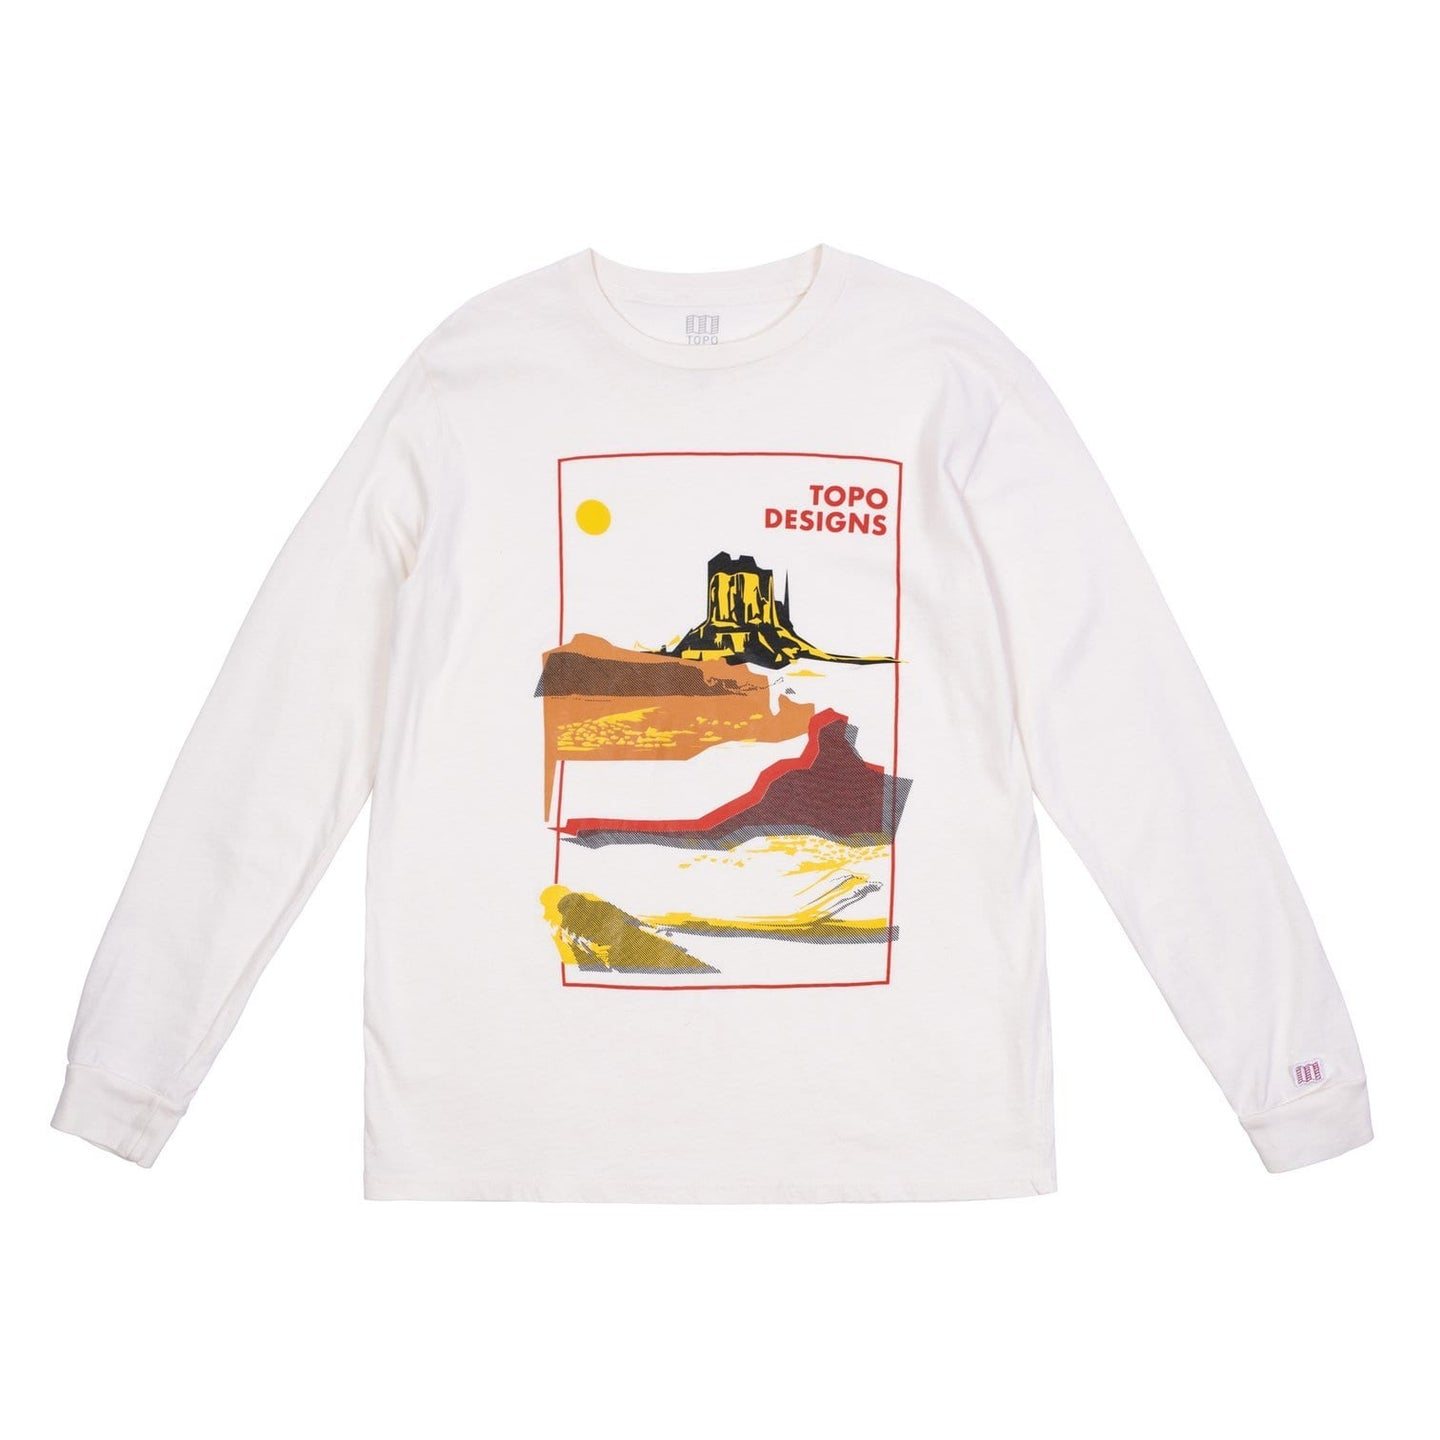 Topo Designs Moab Tee L/S / Neighborhood Goods